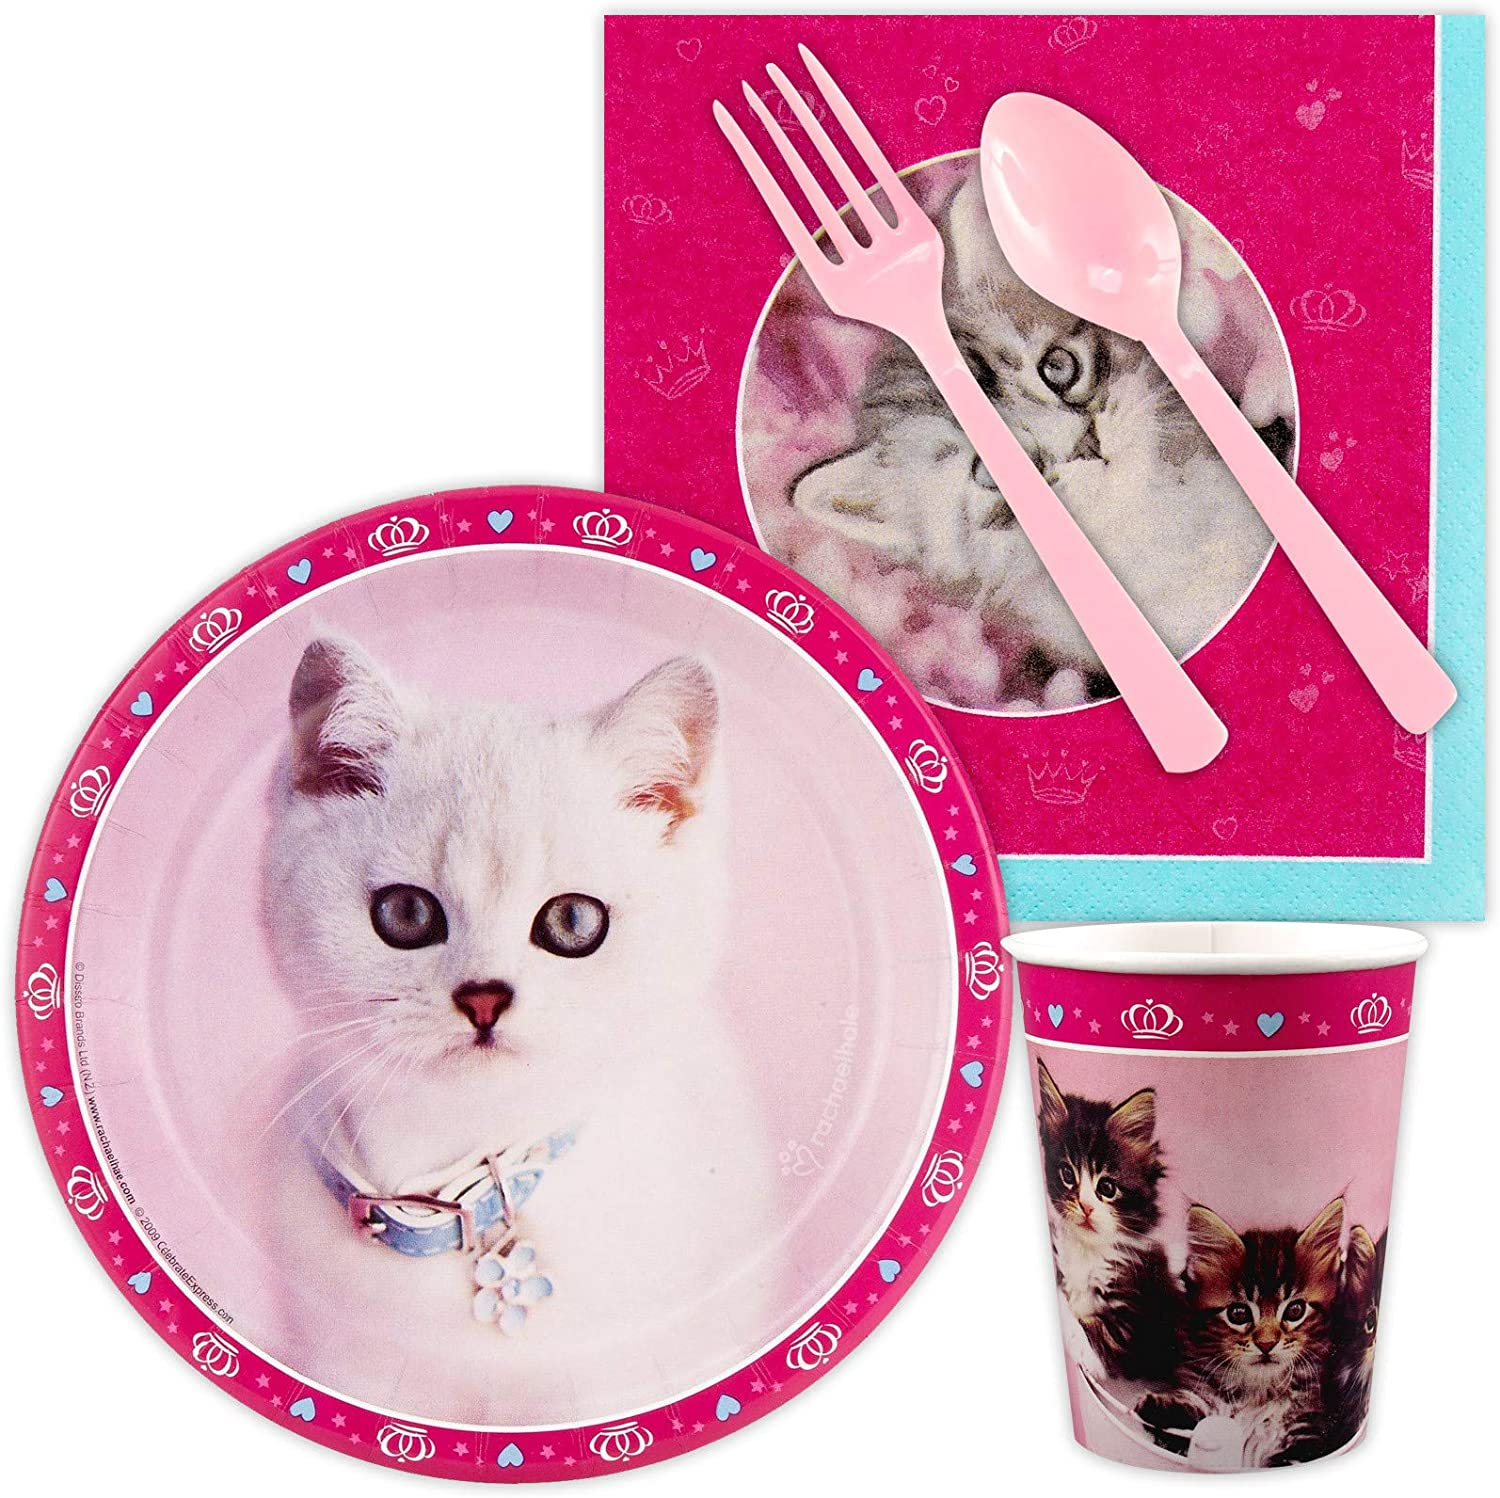 Banner and Cutlery in Pink Purrfect Deluxe Birthday Party Bundle 16 Knives, Forks, Spoons Serves 8 inc Banner 8-9oz Cups 16 Large Lunch Napkins - 87 pcs: 8 Lunch Plates and 8 Dessert Plates